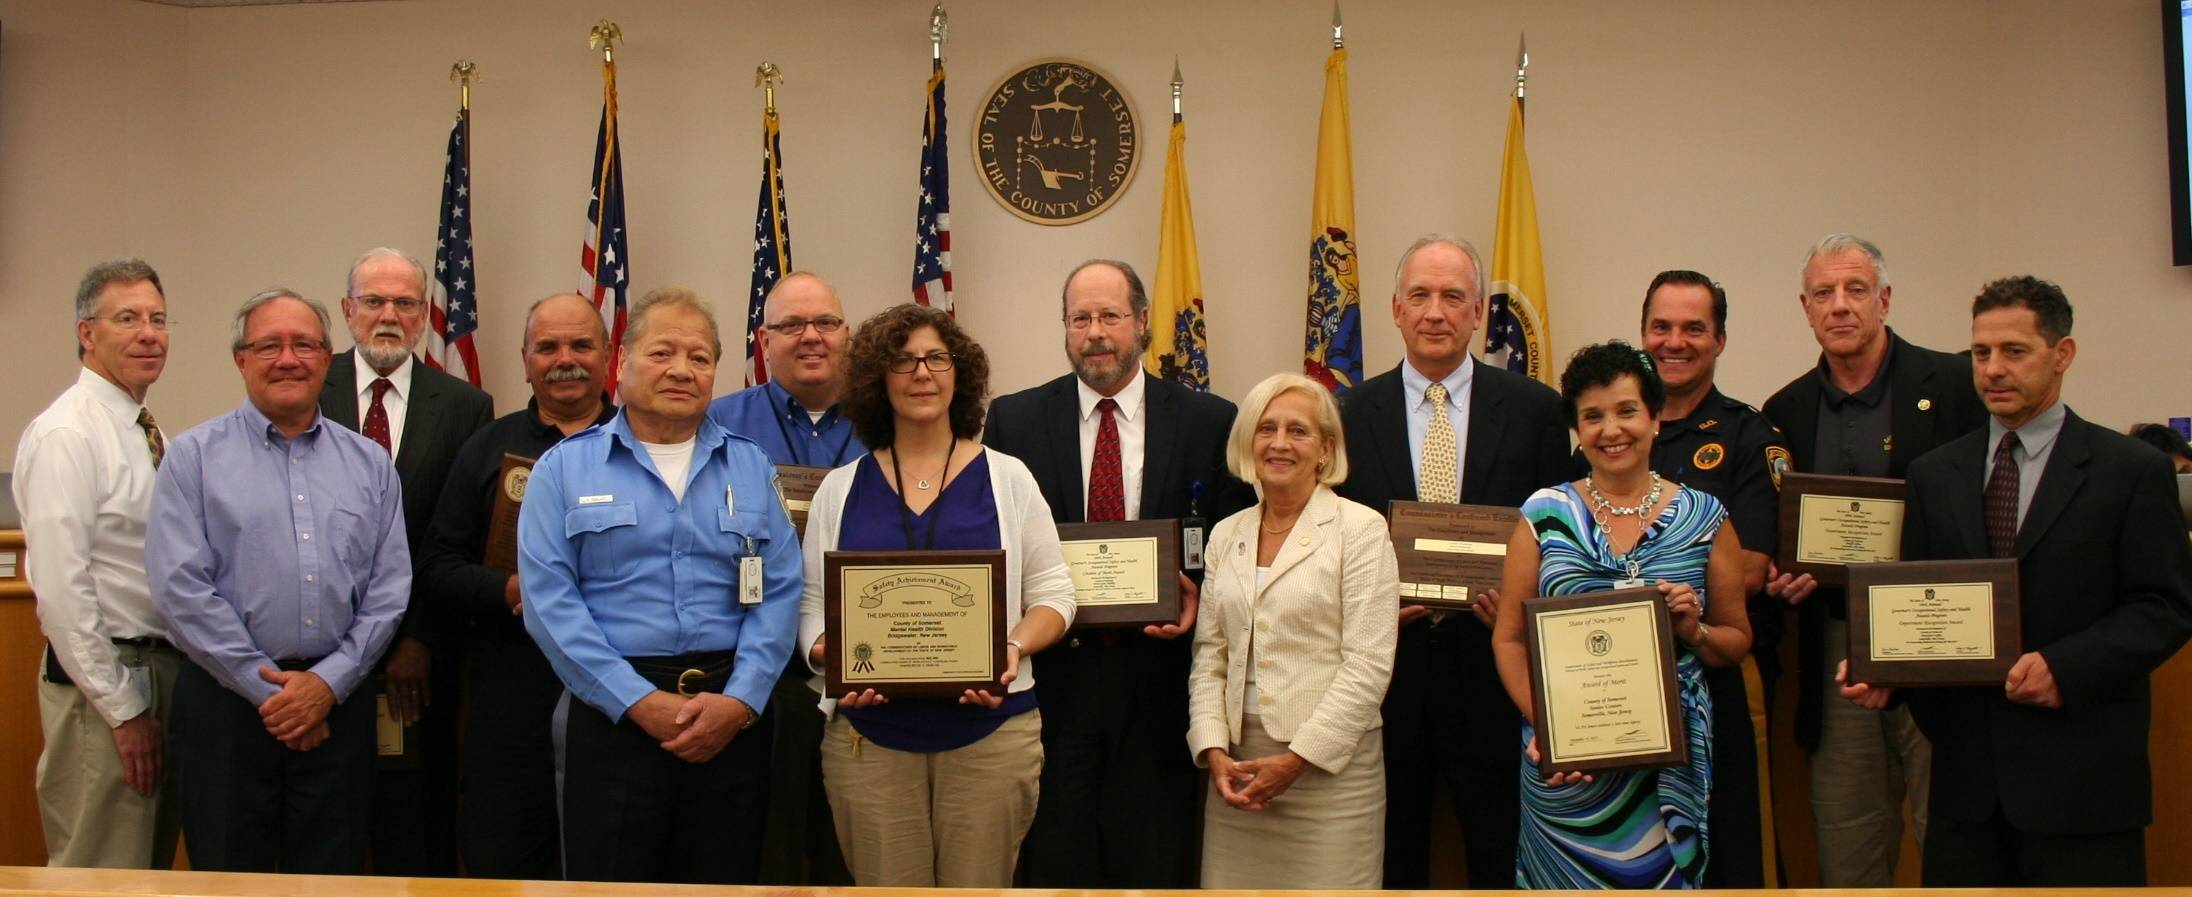 7c9de5265ae55c287570_NJ_Gov_Occupational_Safety_Awards-_crop__2___1_.JPG